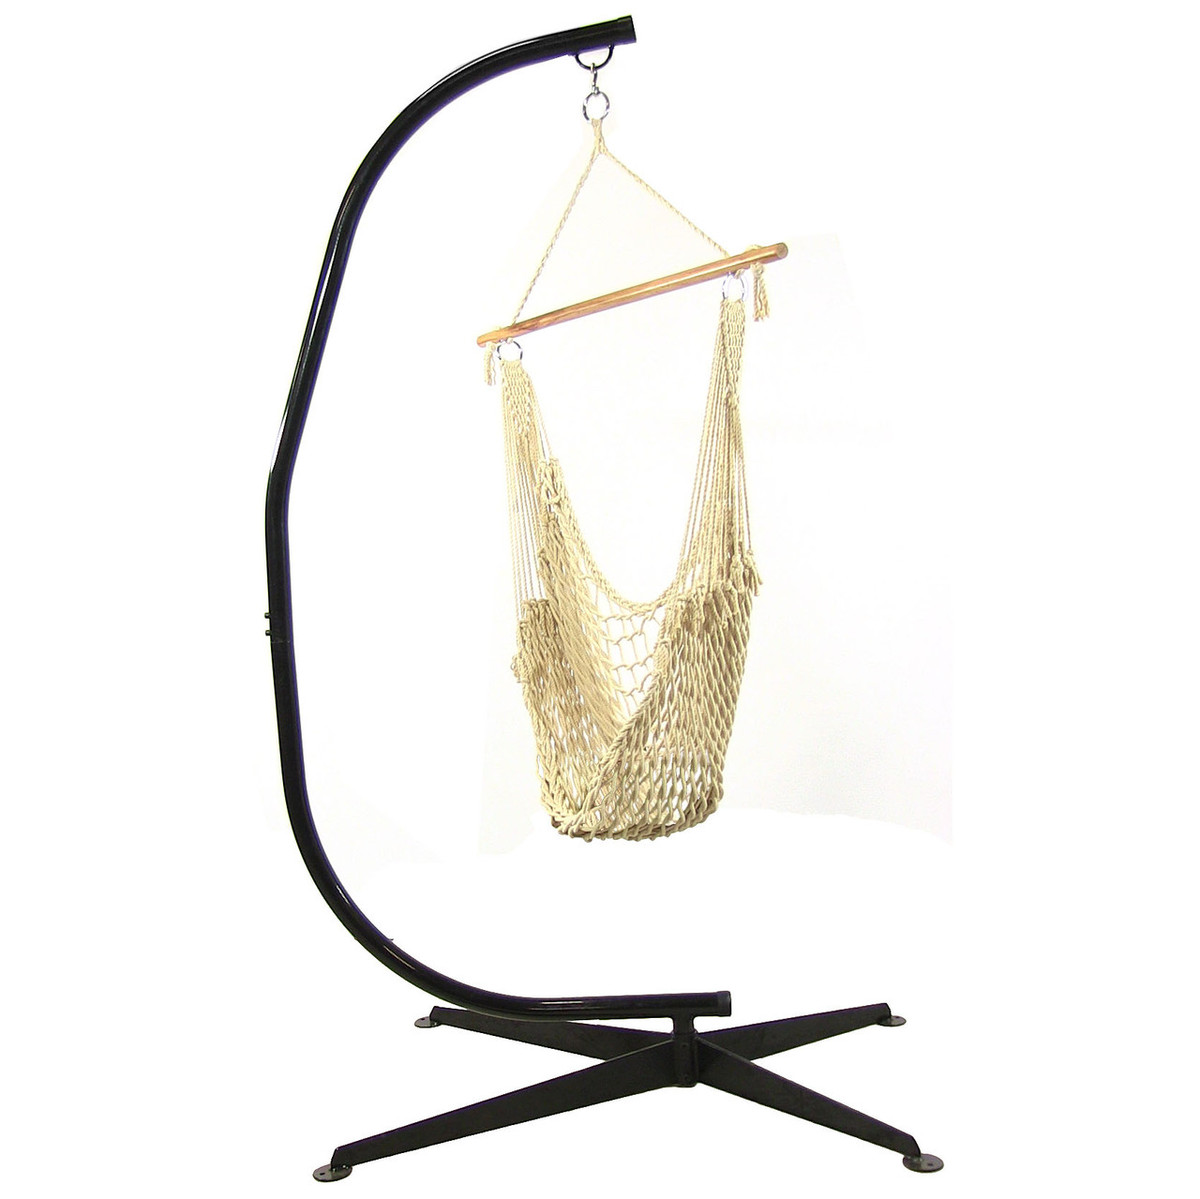 buy chair swing stand bruno power lift parts sunnydaze cotton rope hanging hammock with c 48 inch wide seat max weight 300 pounds